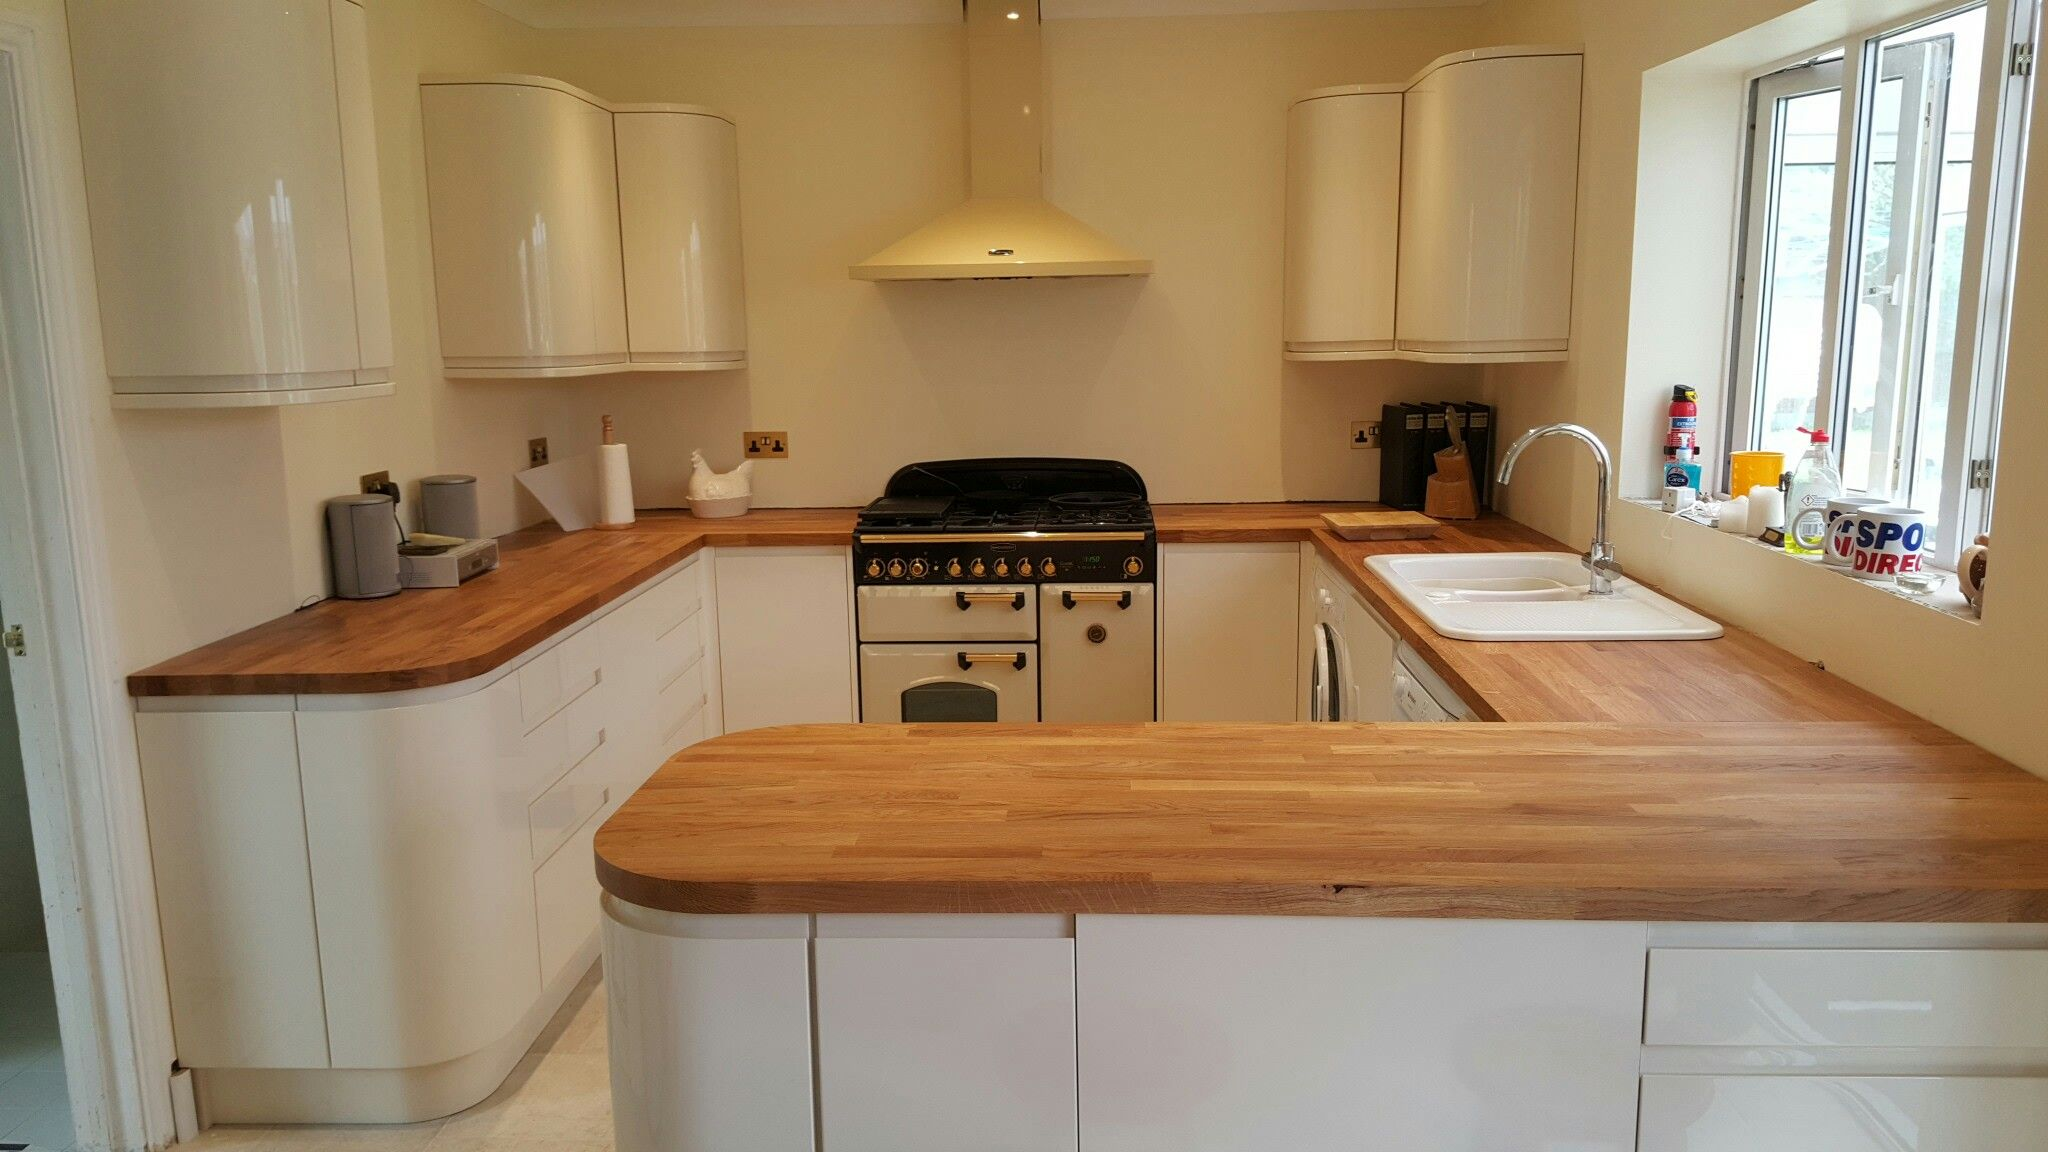 Wickes Kitchen Furniture Wickes Sofia Kitchen With Solid Wood Worktop Designed By Ivan